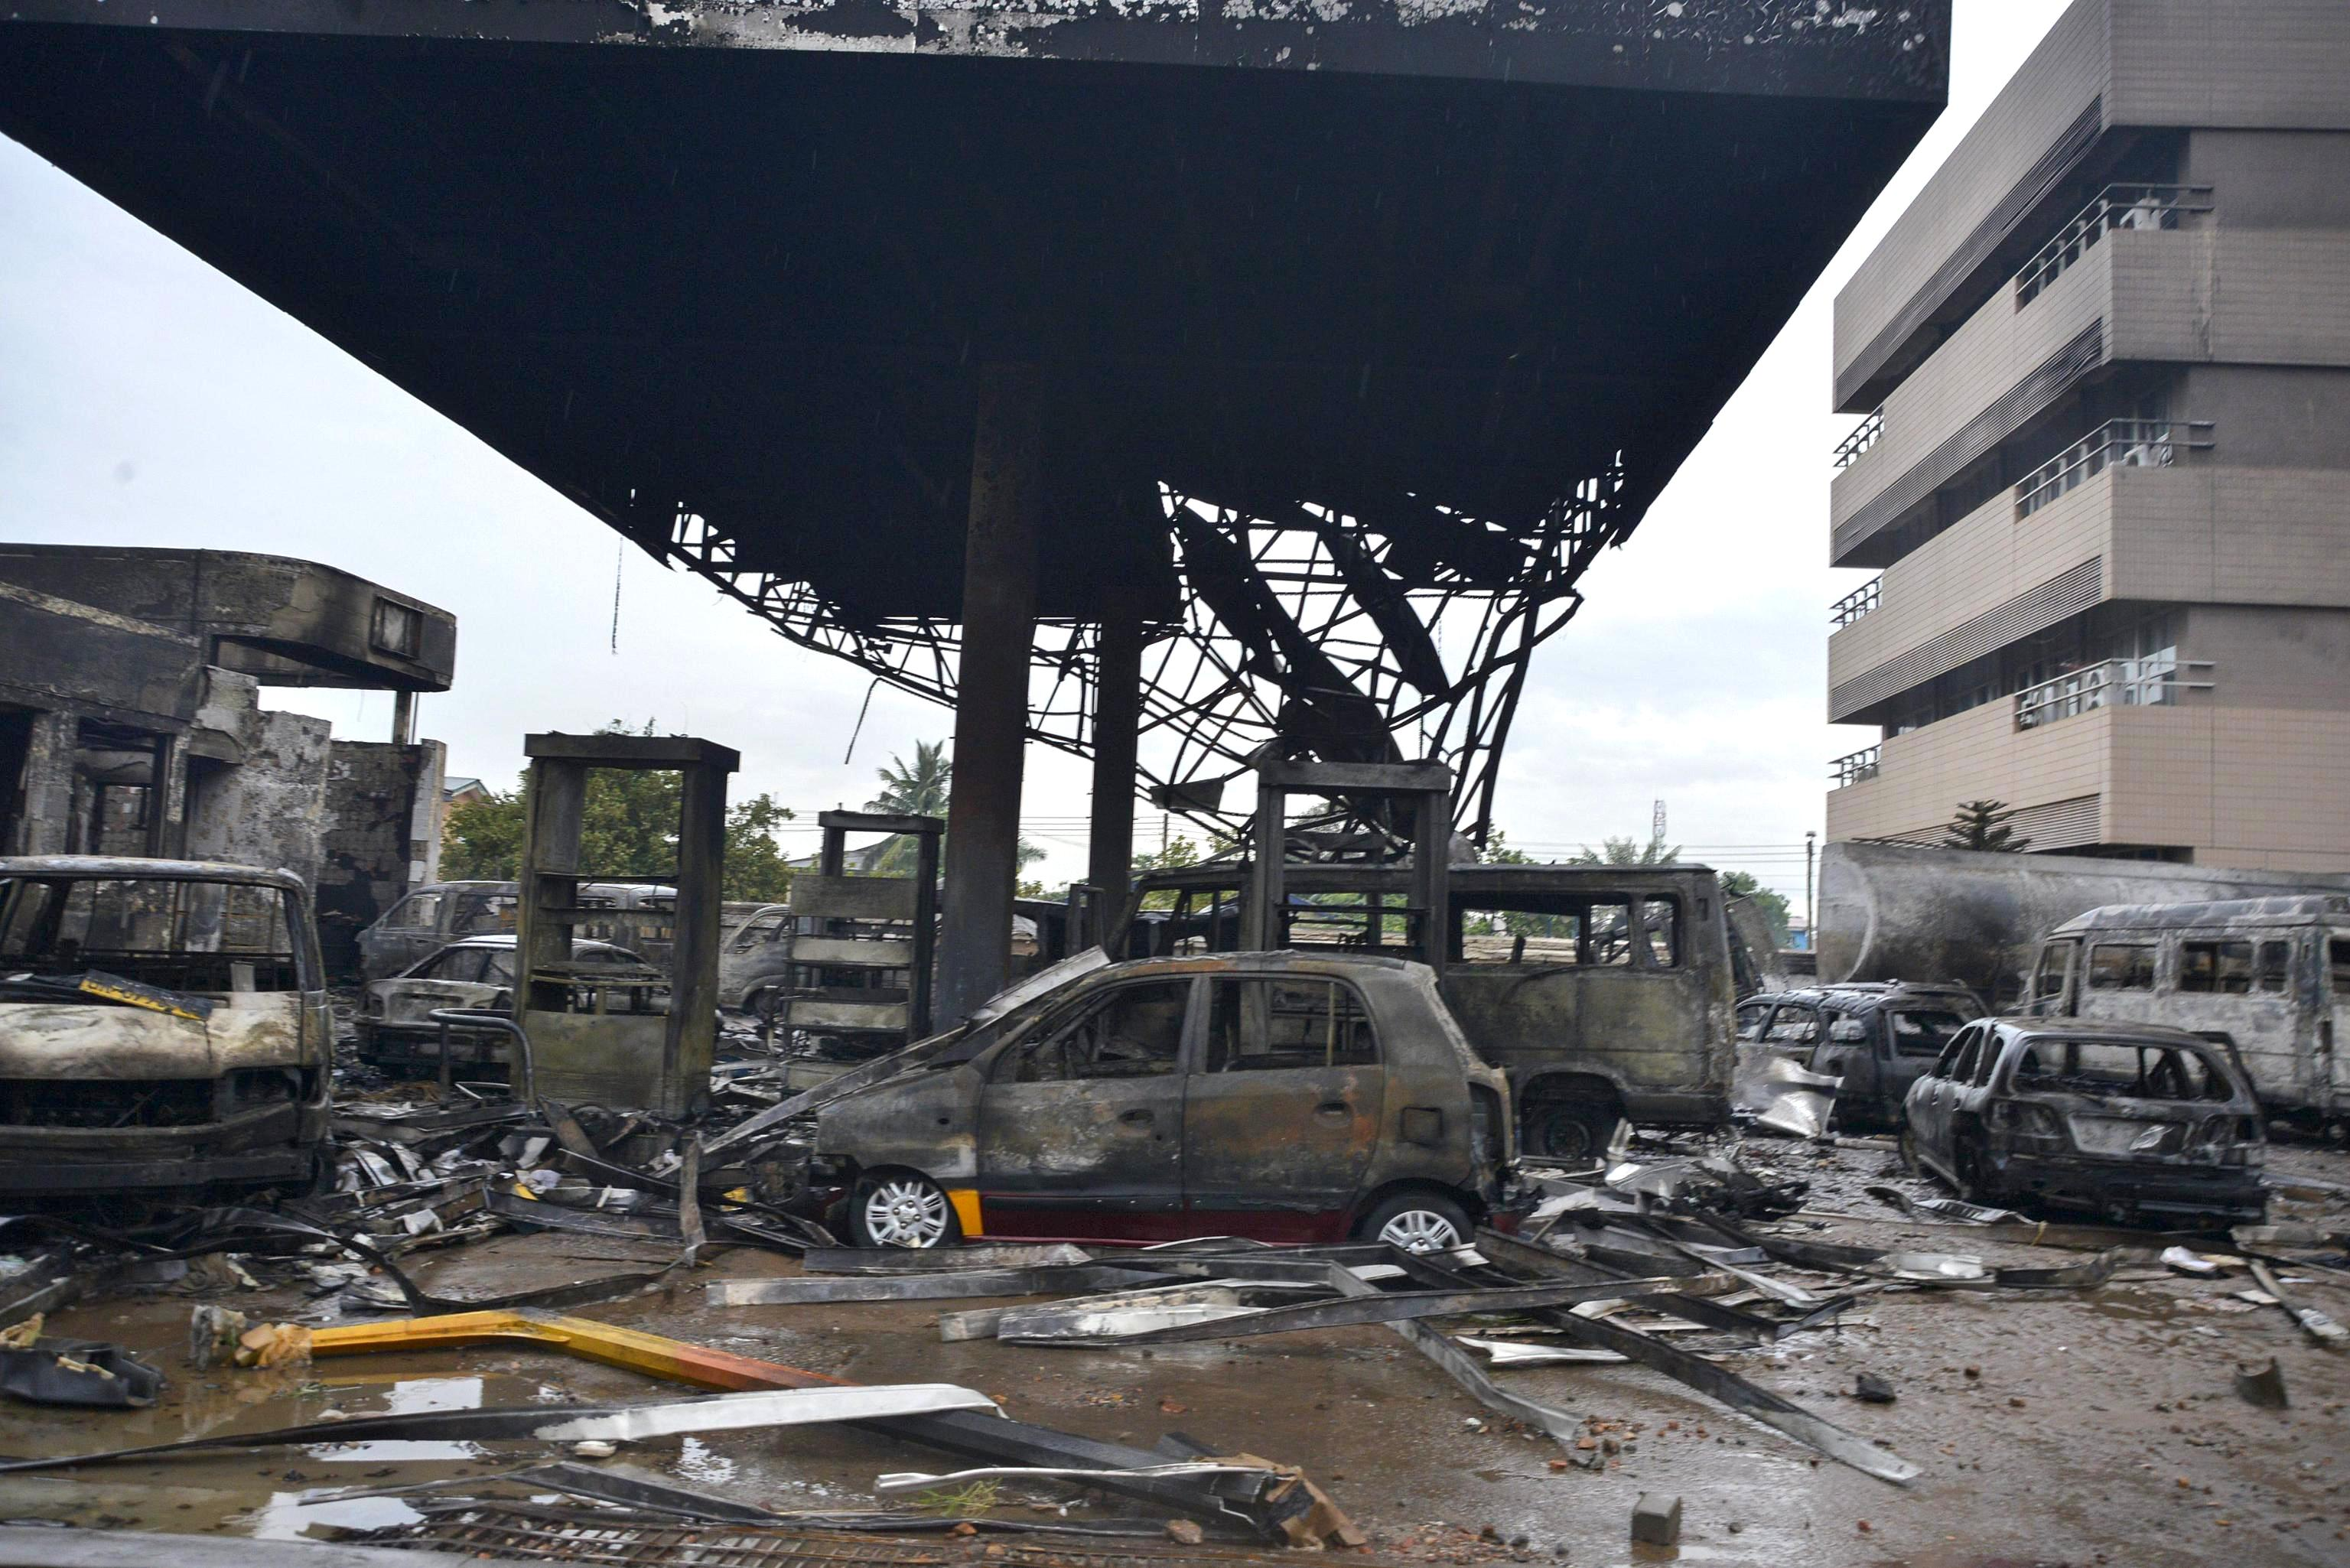 Some 150 people have died in a massive fire at a petrol station in Ghana's capital Accra